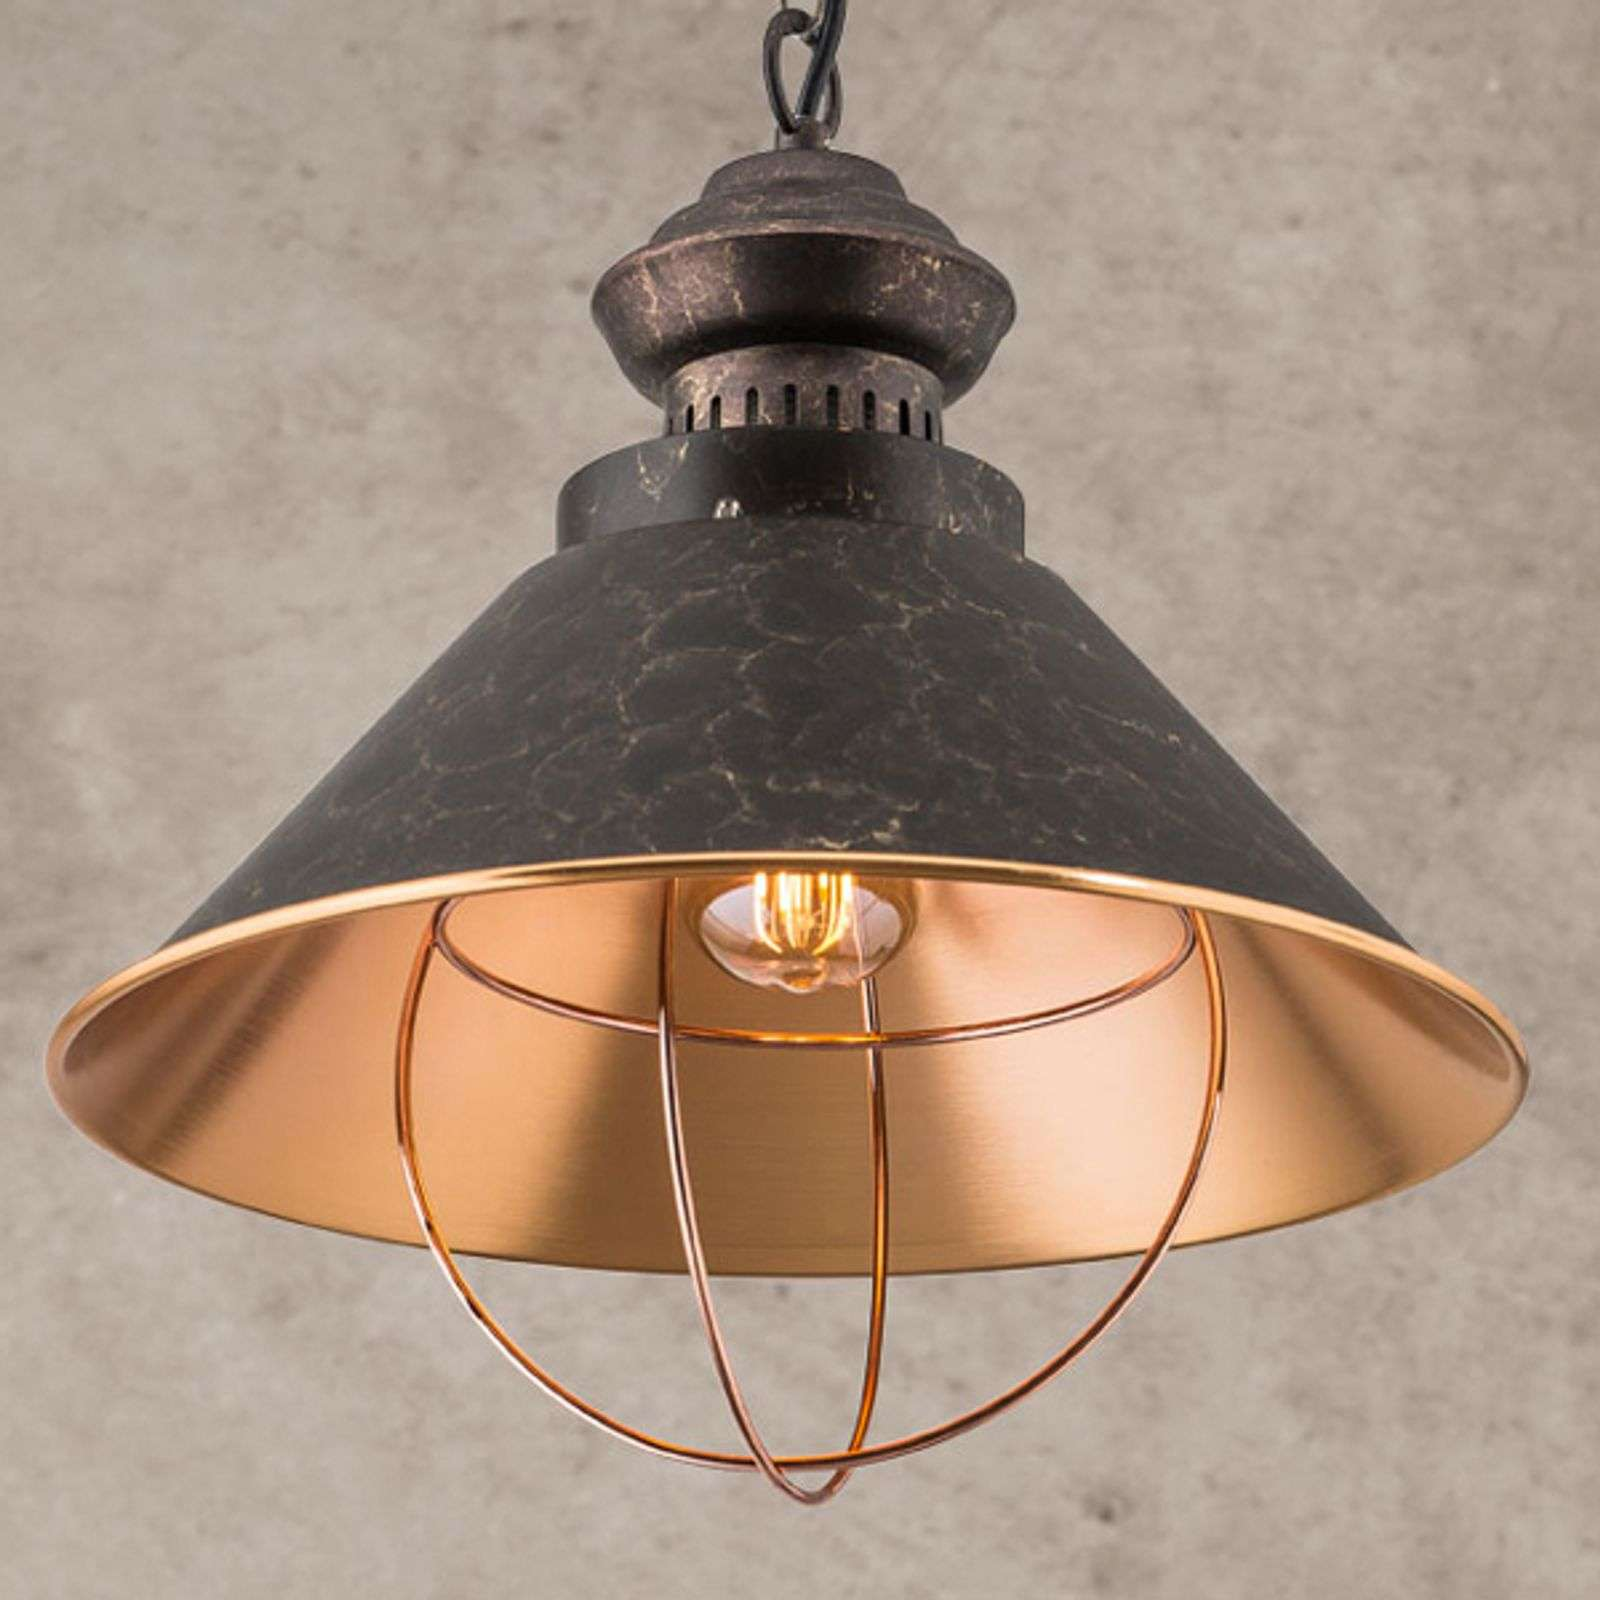 Suspension rustique Shanta, à une lampe